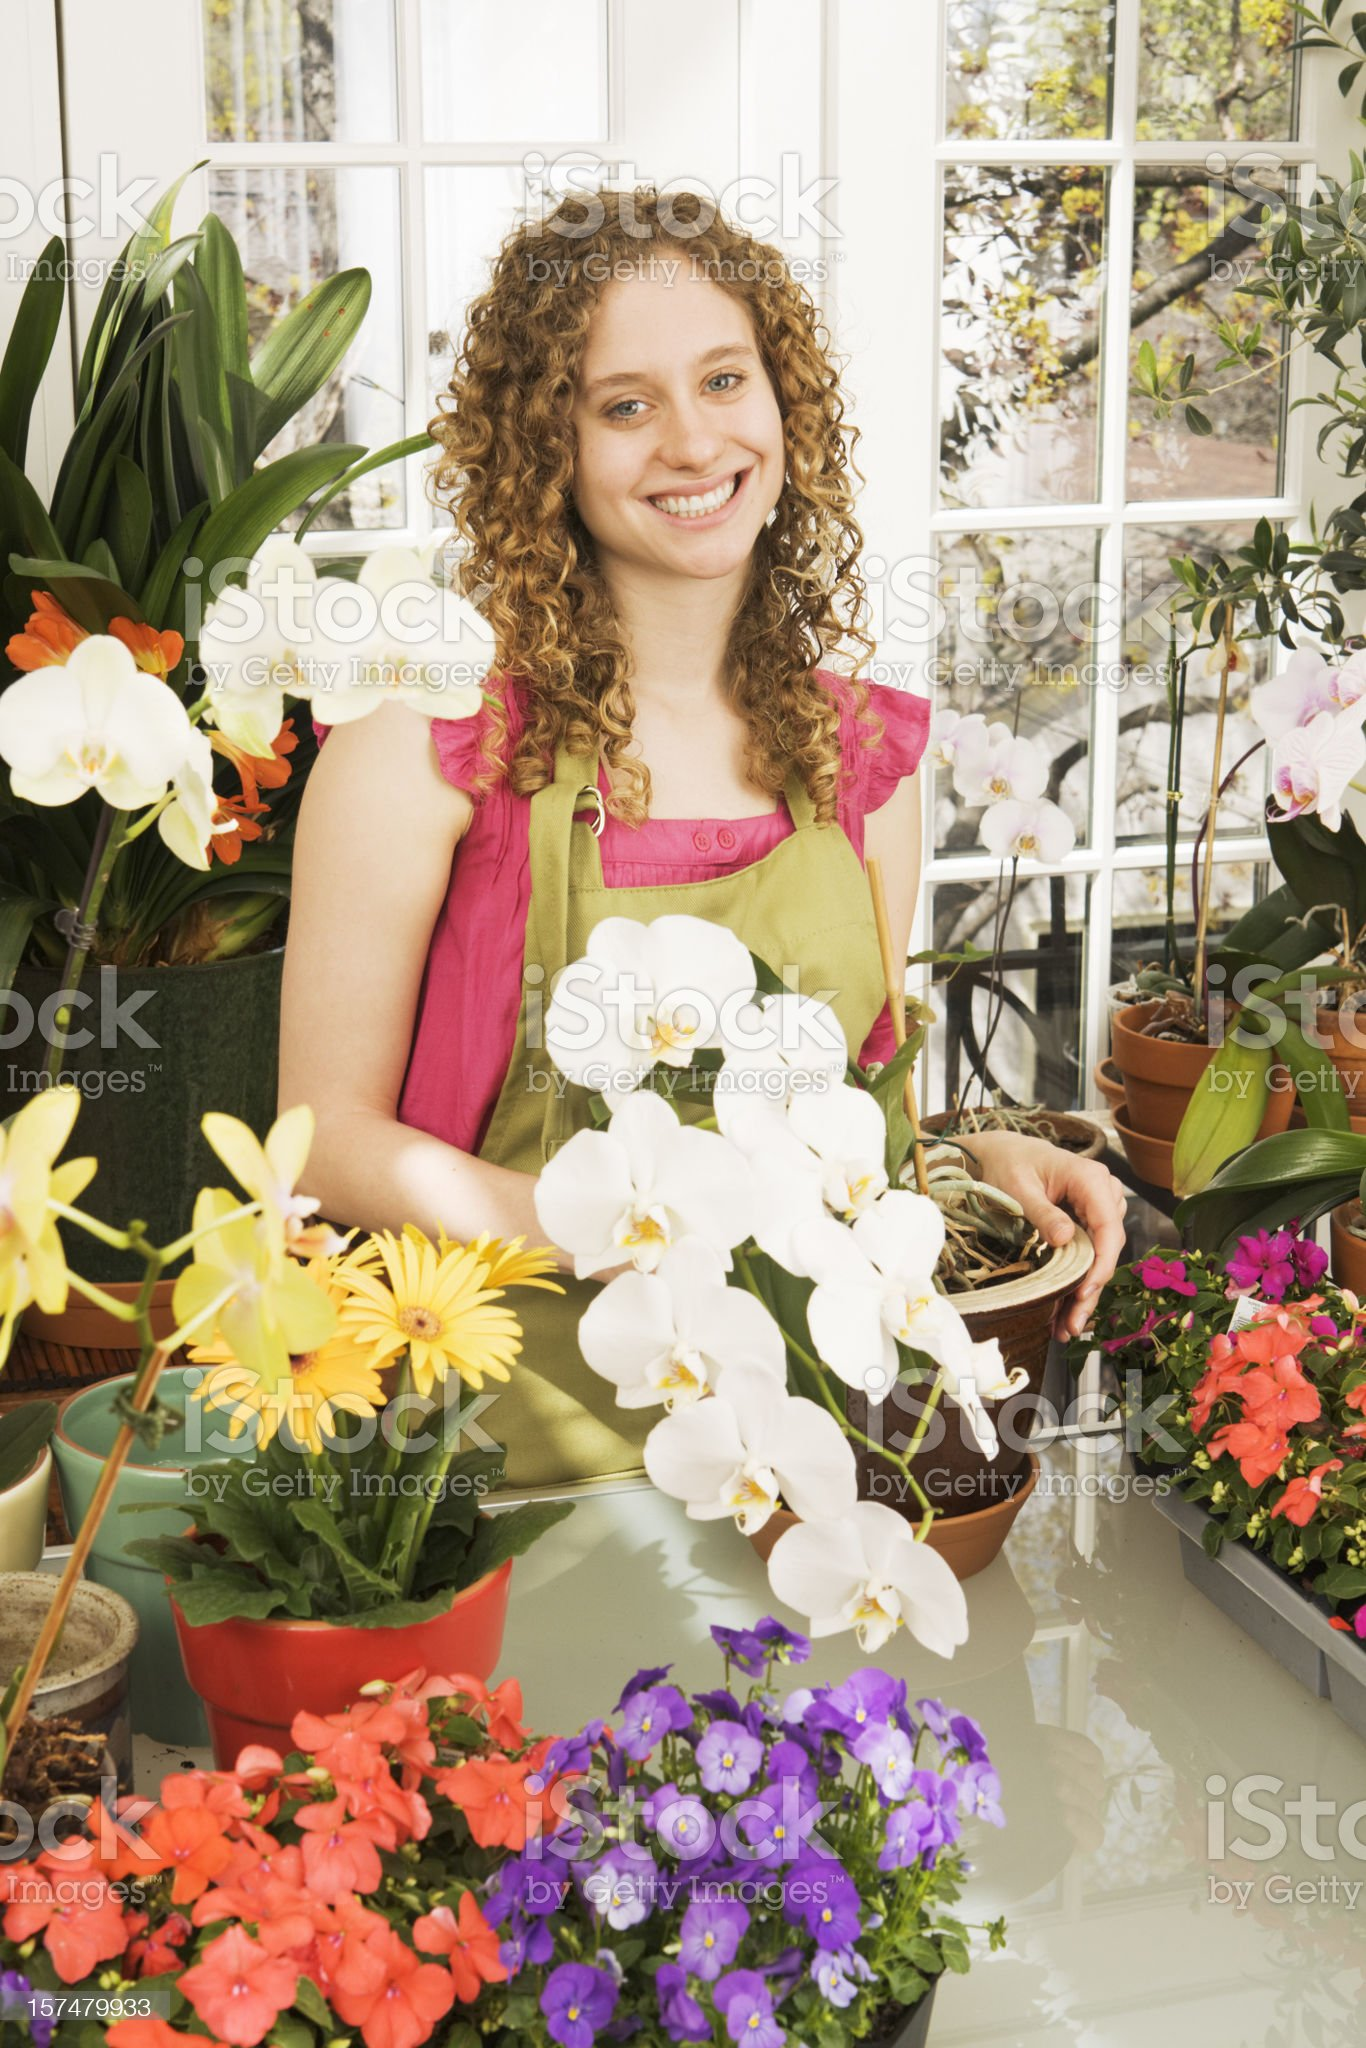 Florist, Small Business Owner of Flower Shop, Garden Center Store royalty-free stock photo